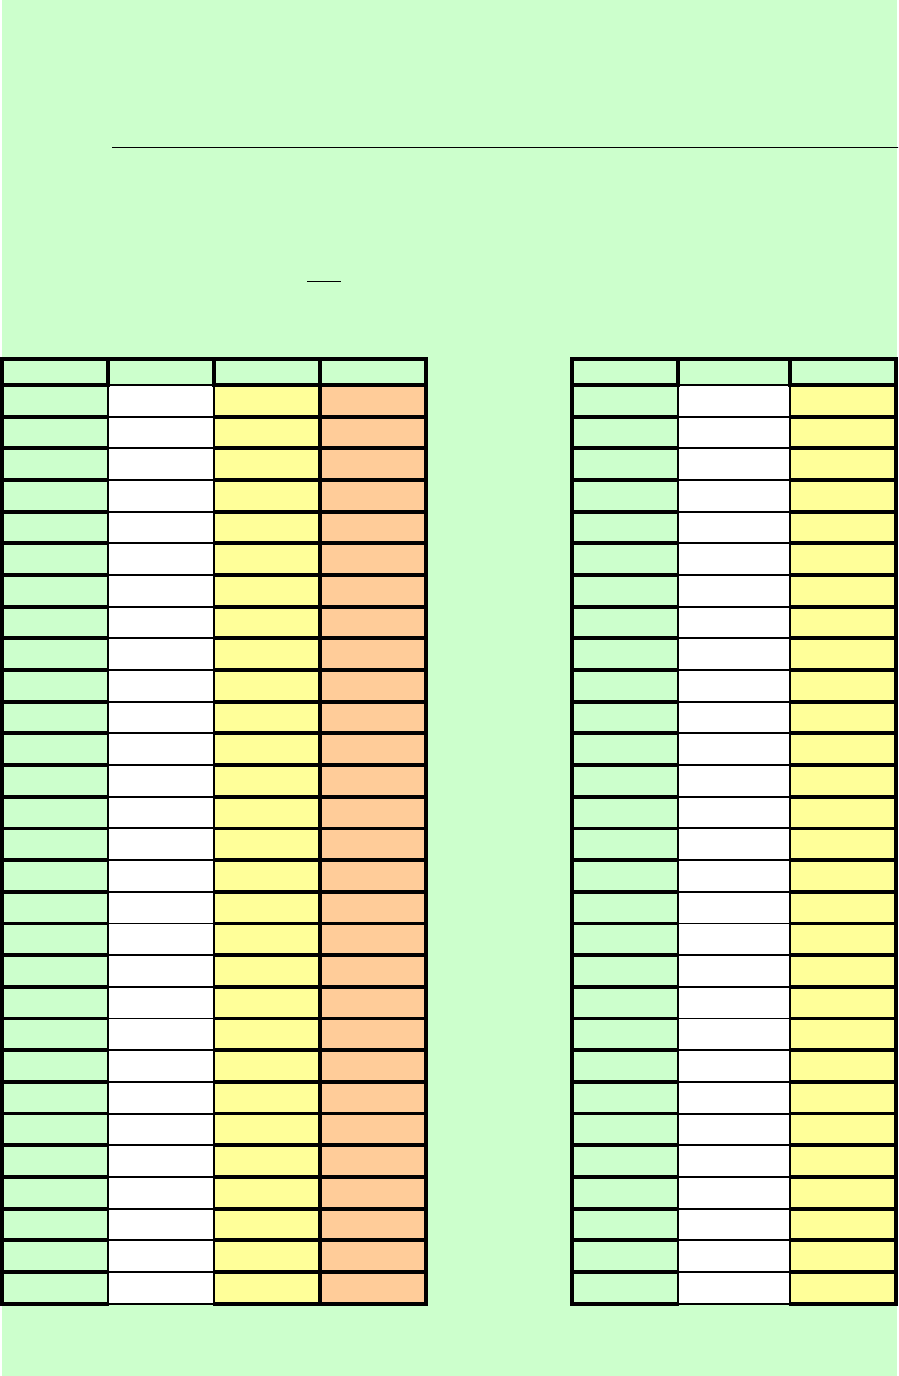 Baby Fenton Growth Chart Calculations